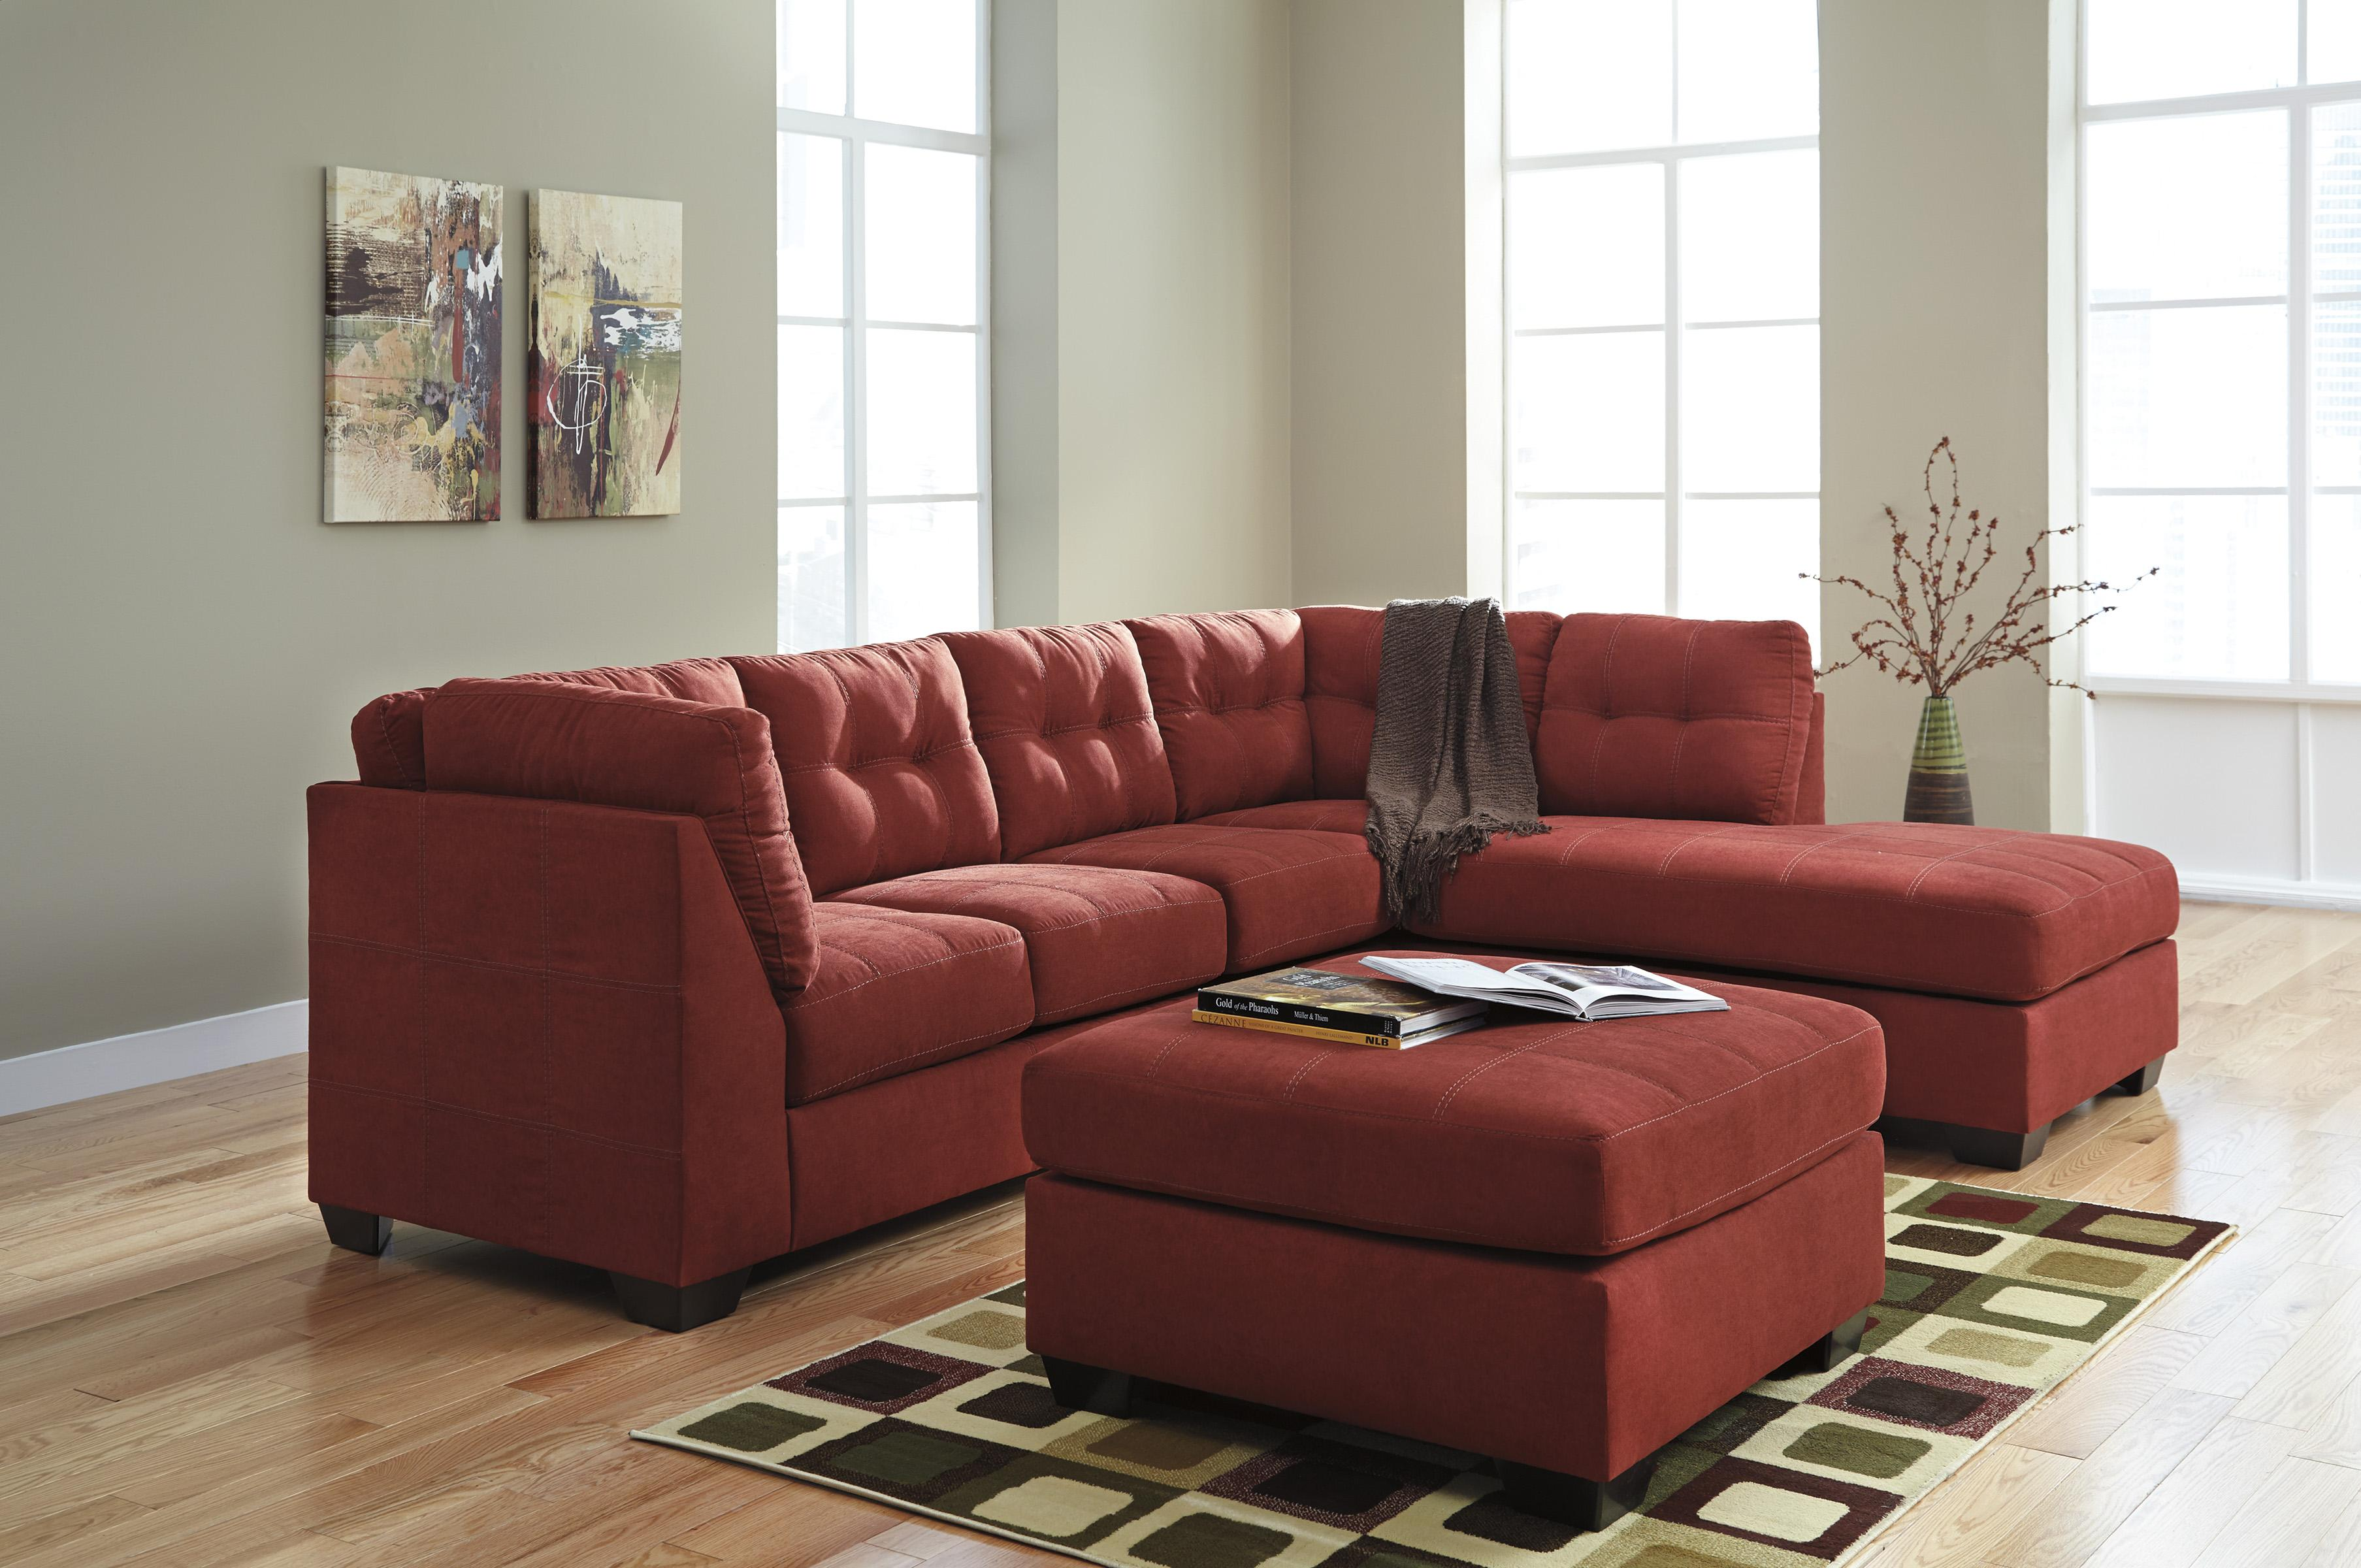 Furniture & Rug Fancy Sectional Sleeper Sofa For Best Home